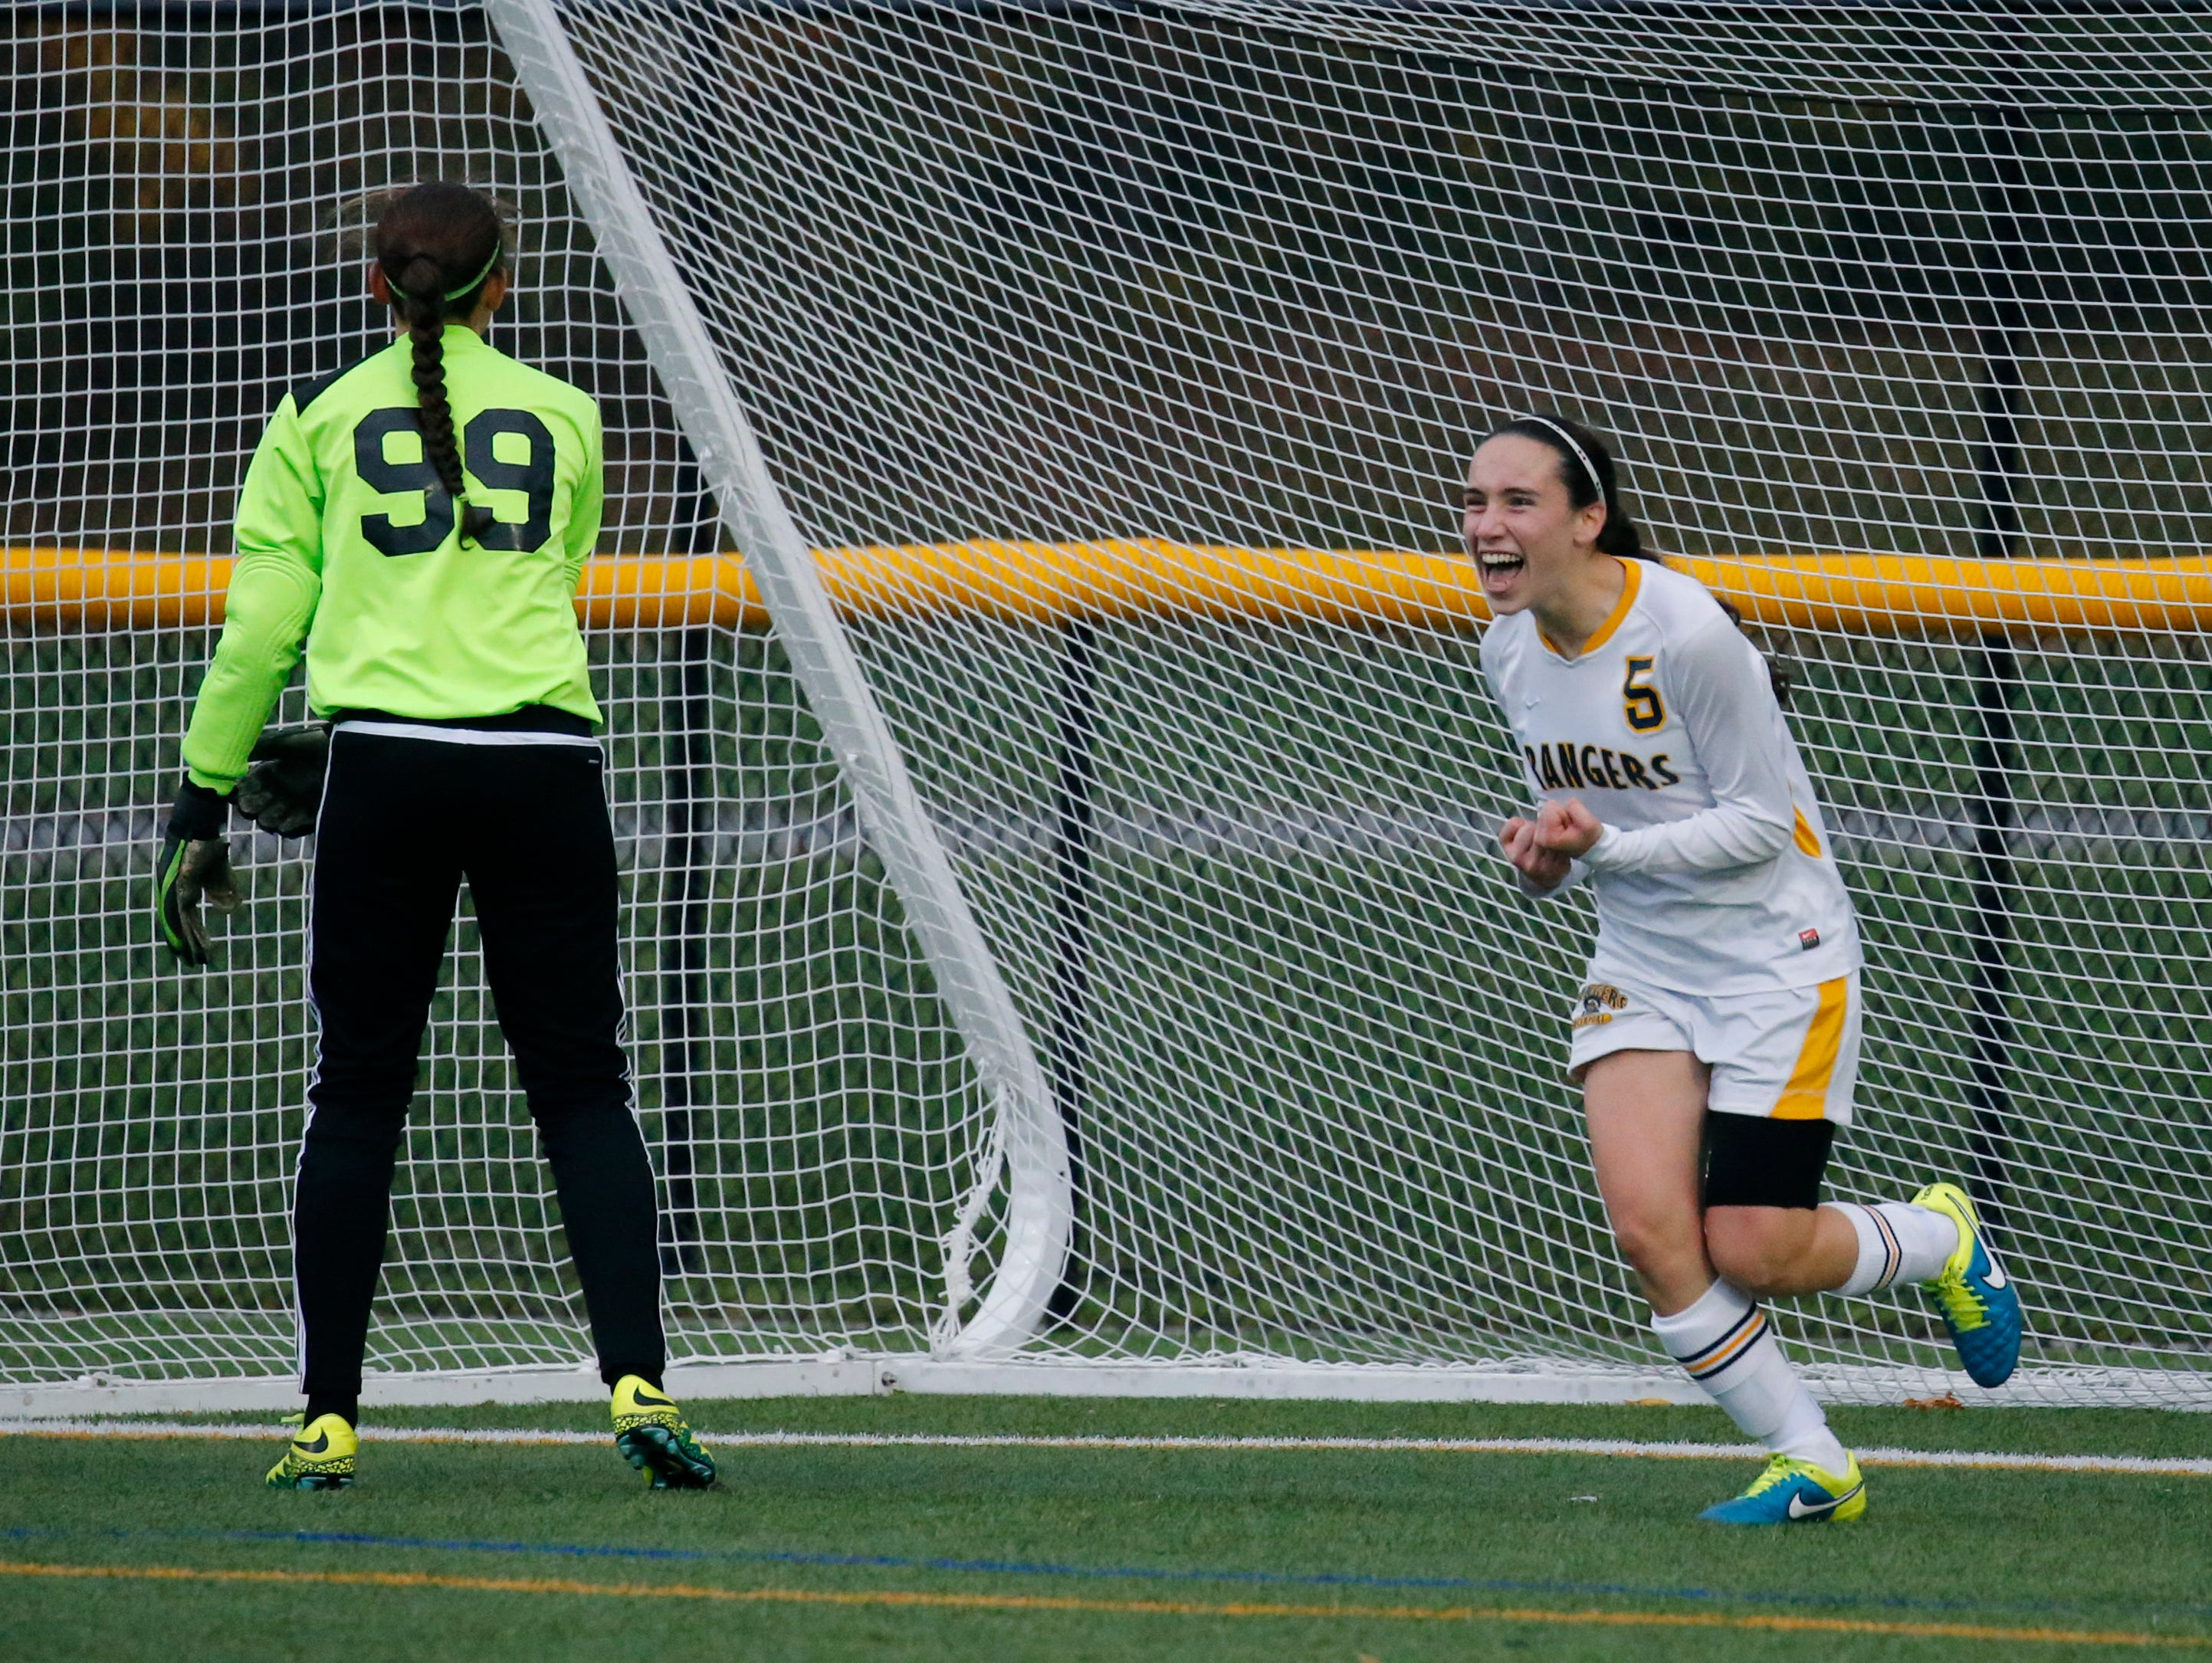 Spencerport's Luca Fahmer shows her excitement after scoring for a 2-0 win over Aquinas at Webster Schroeder High School.